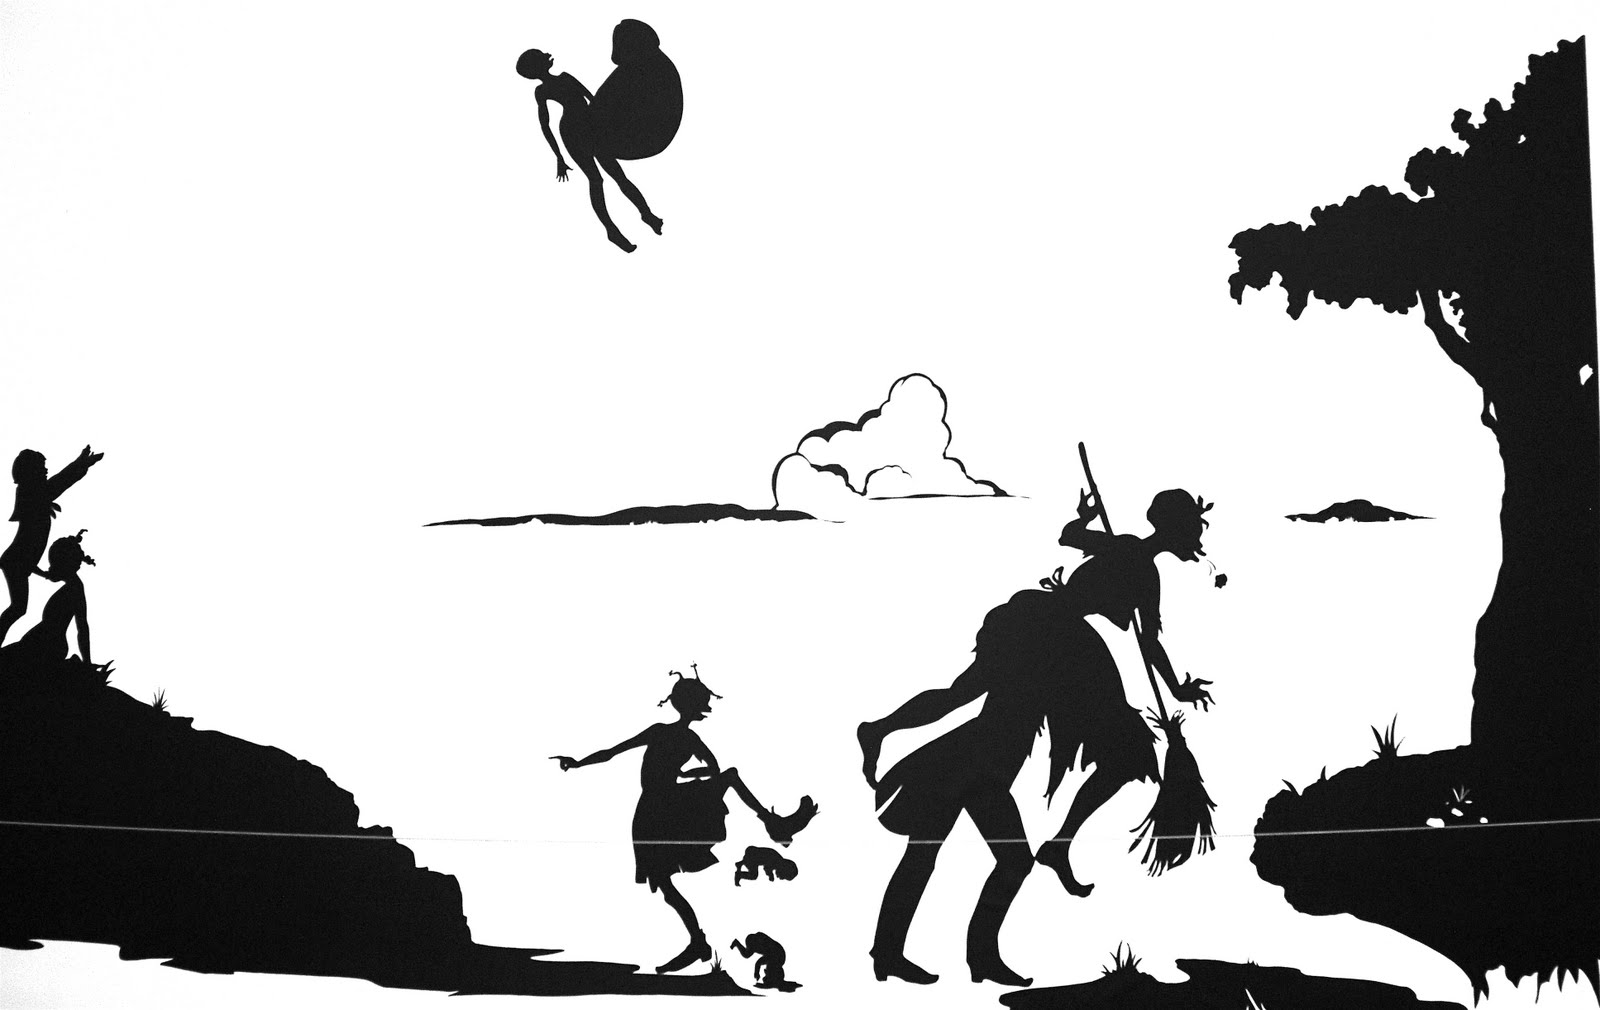 Kara walker uses paper silhouettes to portray race and gender relations